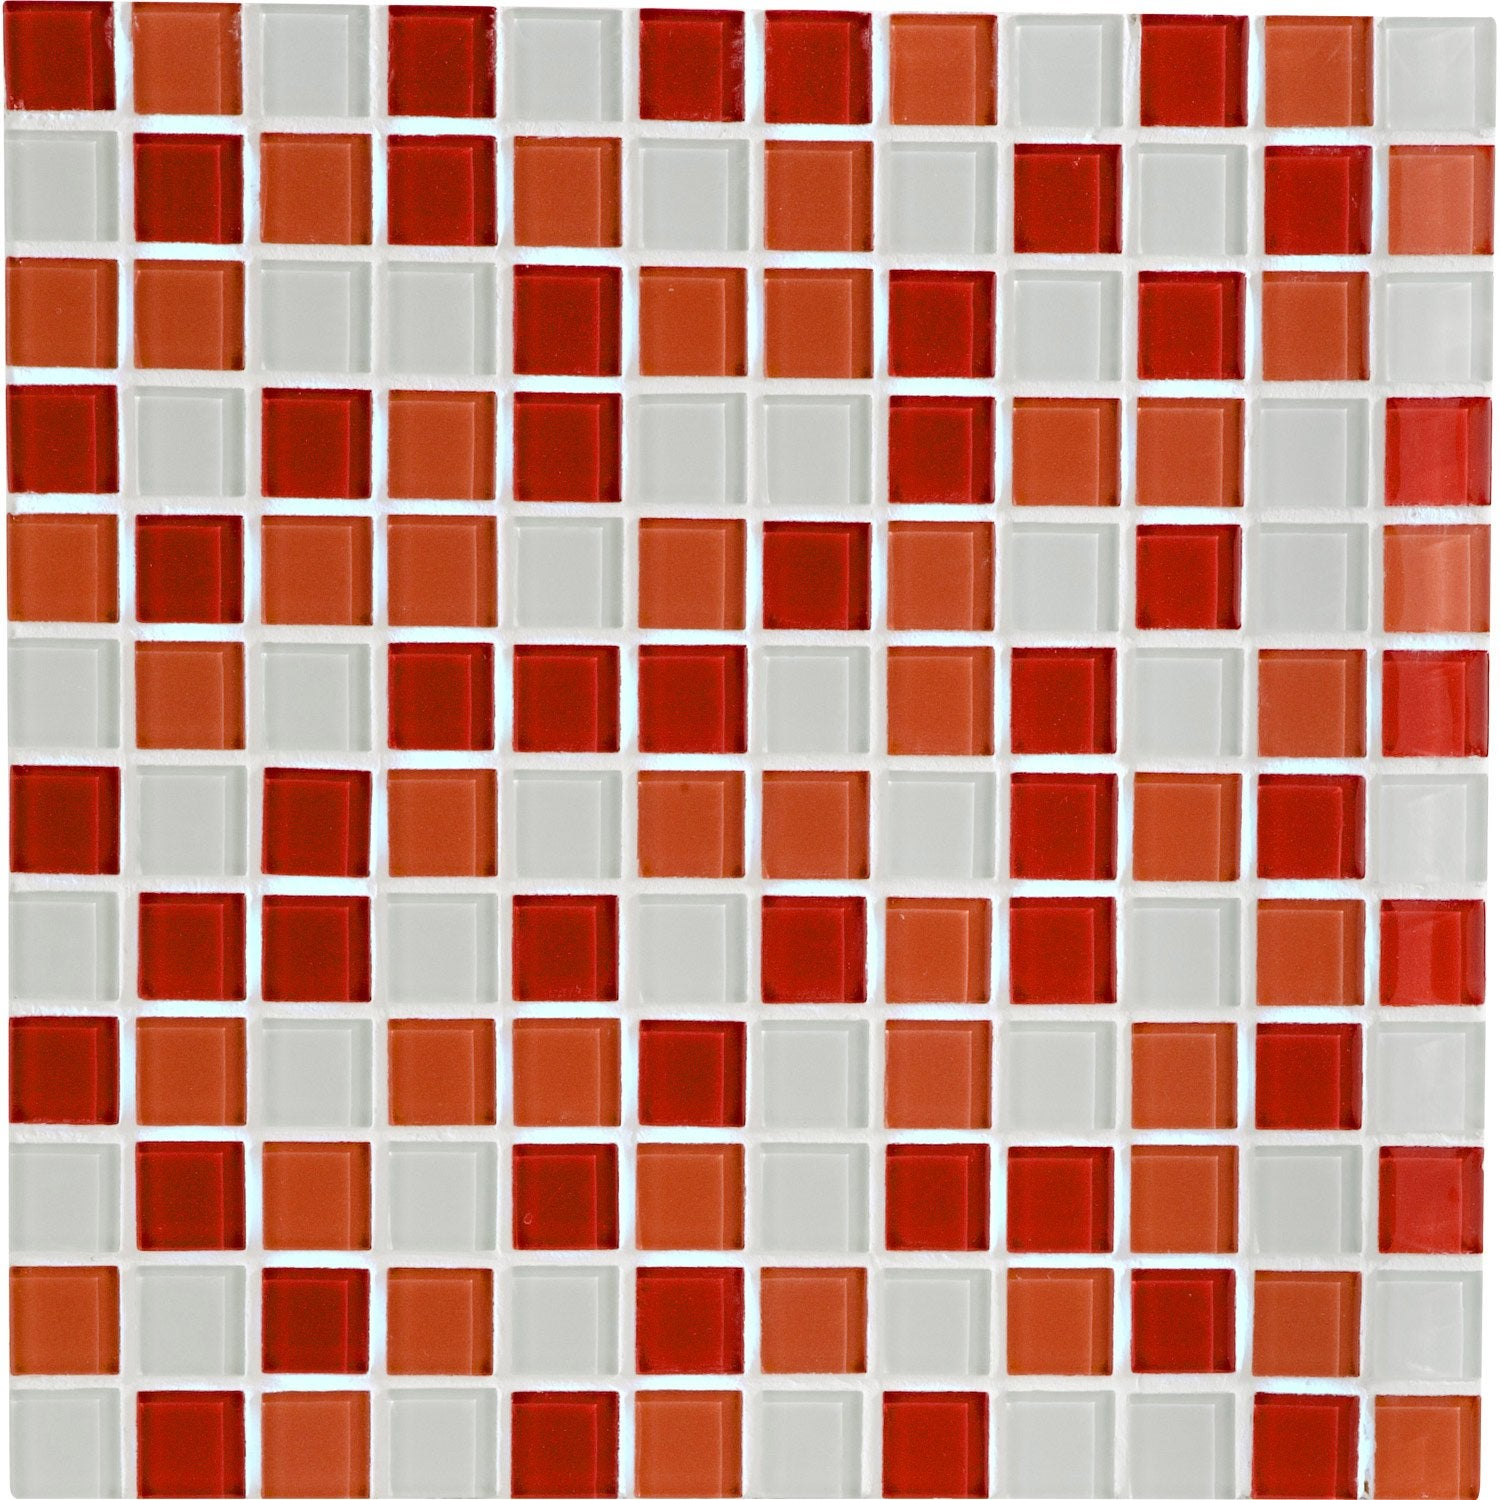 Mosa que mur shaker mix rouge leroy merlin for Carrelage en mosaique